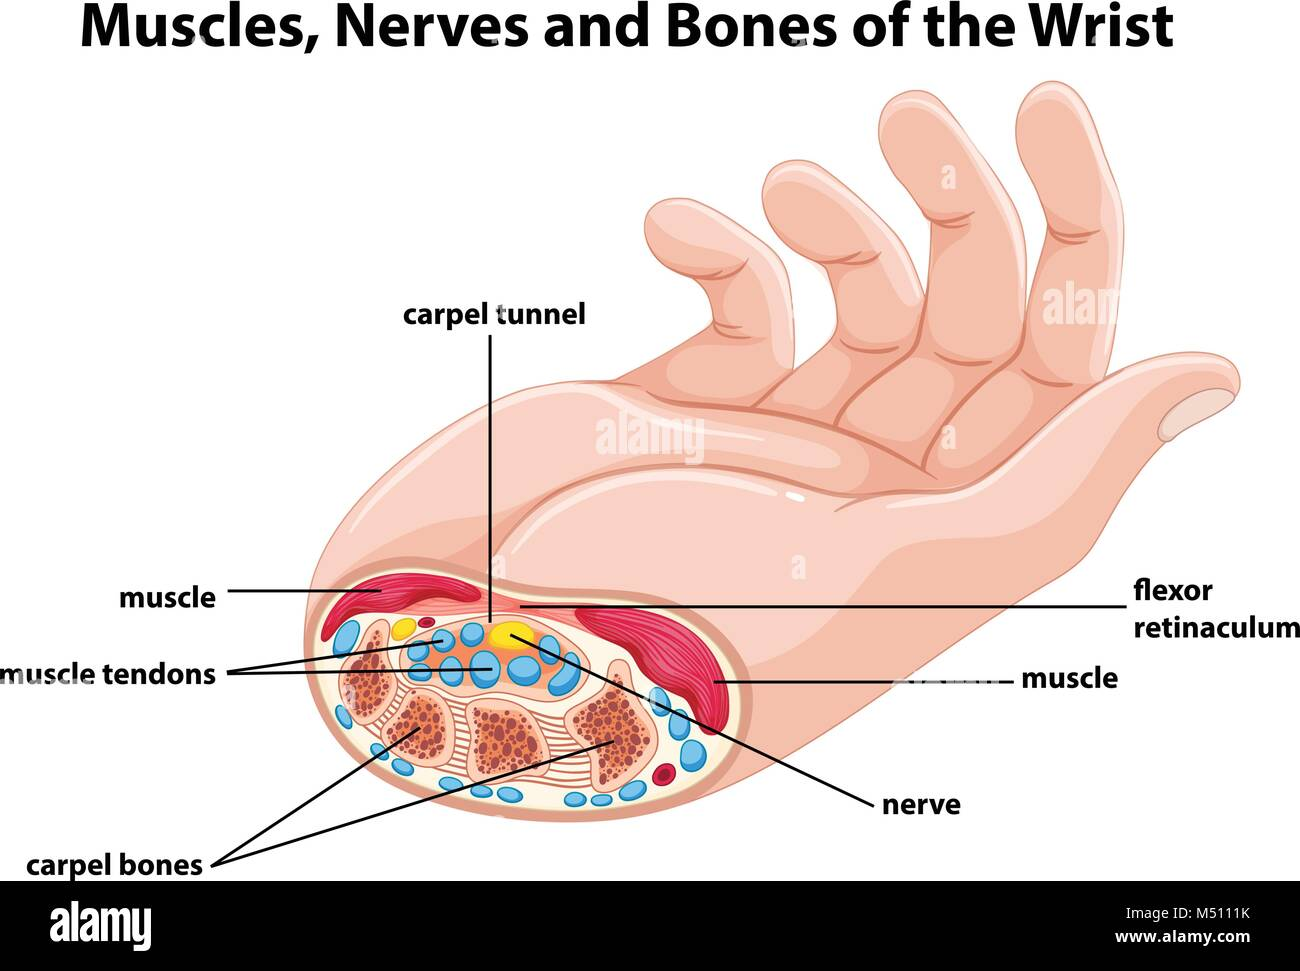 Strain Stock Vector Images Alamy And The Root Of Middle Finger On Index Bone See Diagram Showing Human Hand With Muscles Nerves Illustration